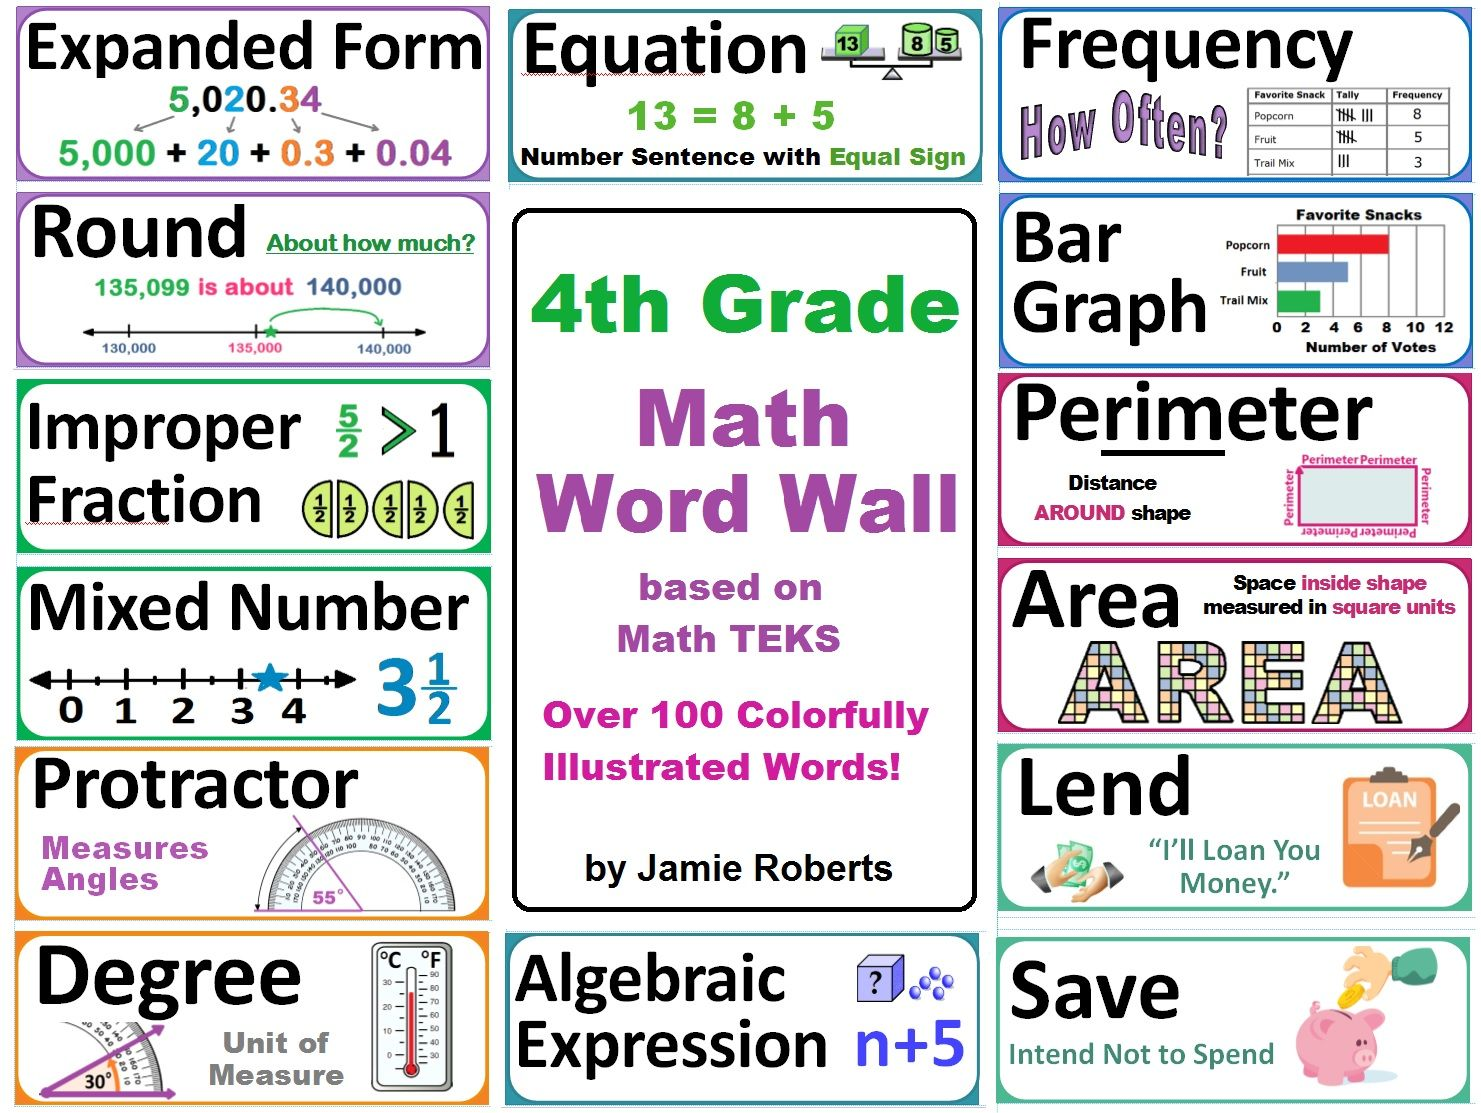 4th Grade Math Word Wall correlates with Texas TEKS (over ...